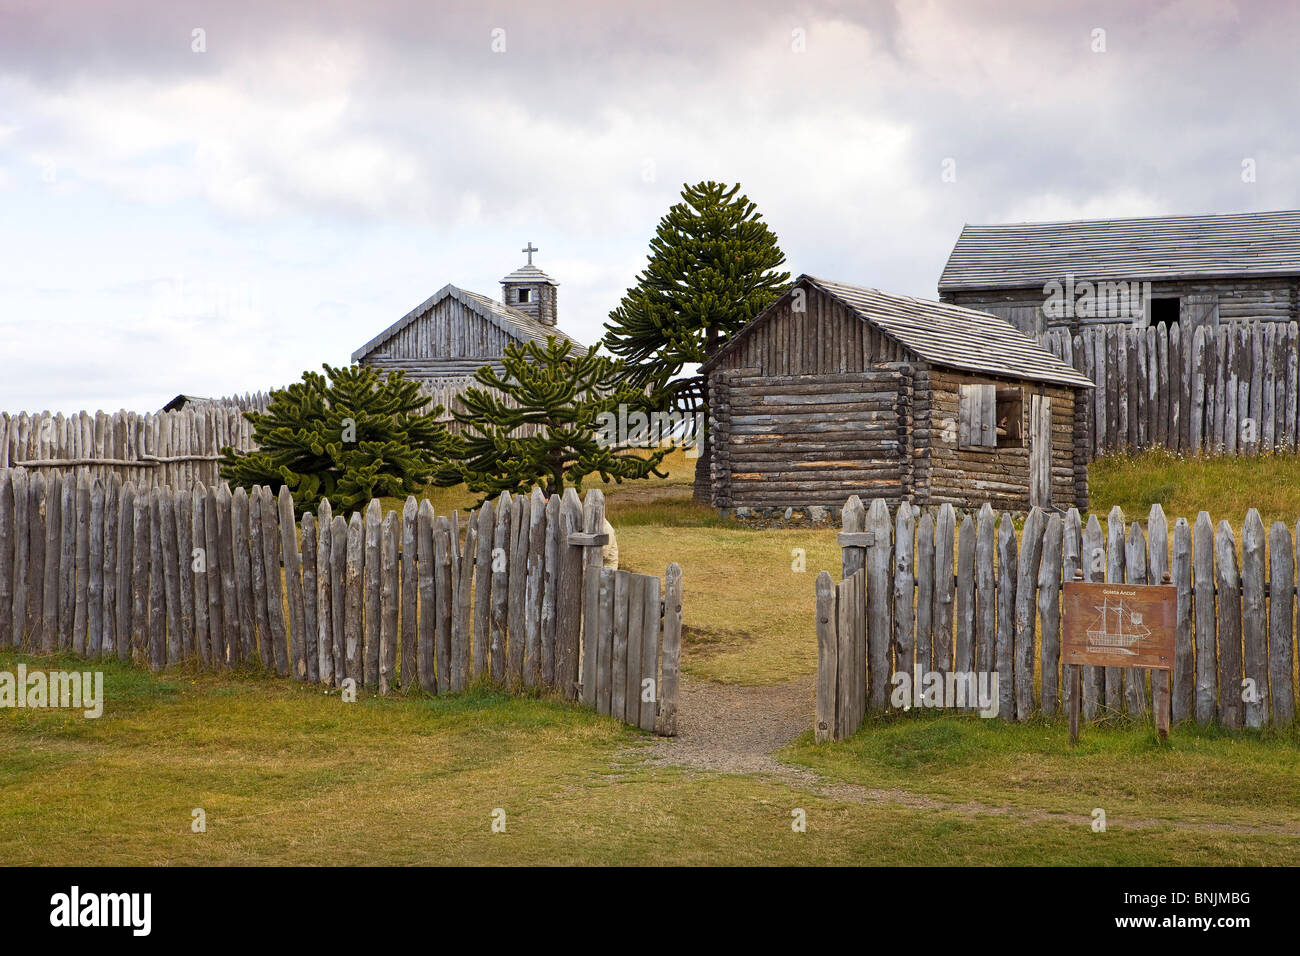 Chile South America March 2009 Chilean Patagonia Strait of Magellan Bulnes Fort wooden wood palisade historic historcial - Stock Image